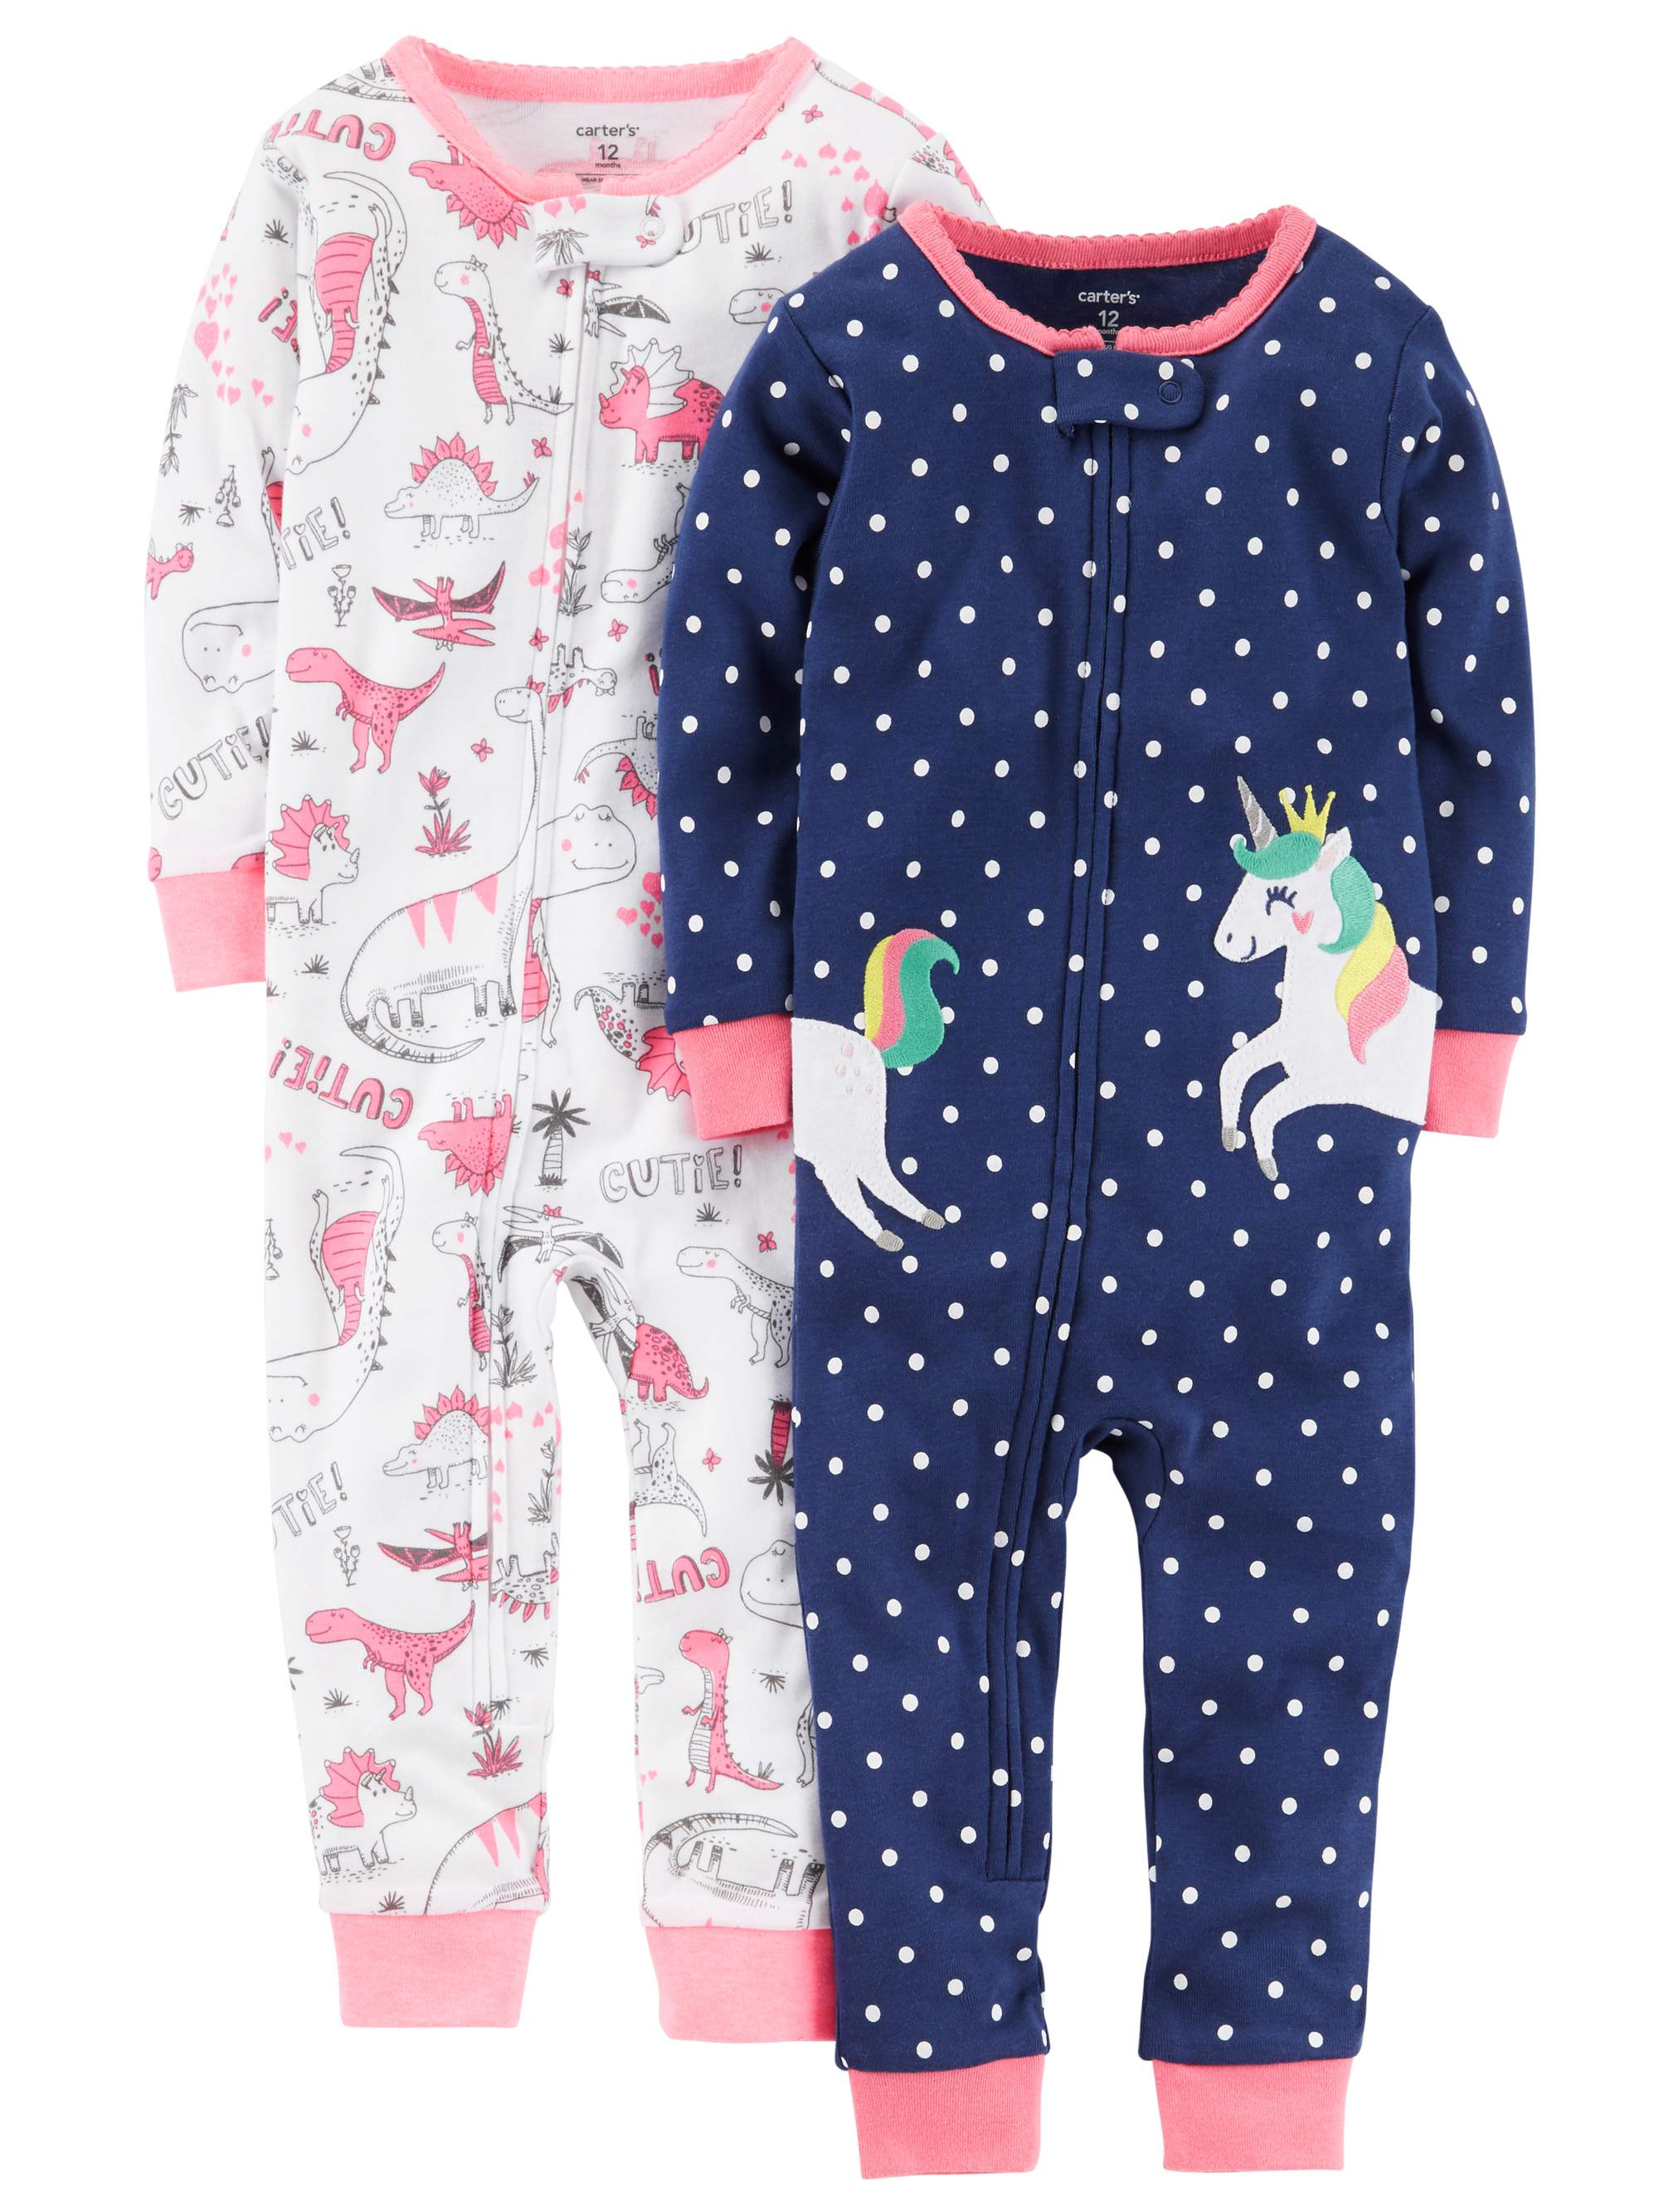 6ec0ee2fdc Child of Mine by Carter s - Carters Toddler Girl Footless Pajamas